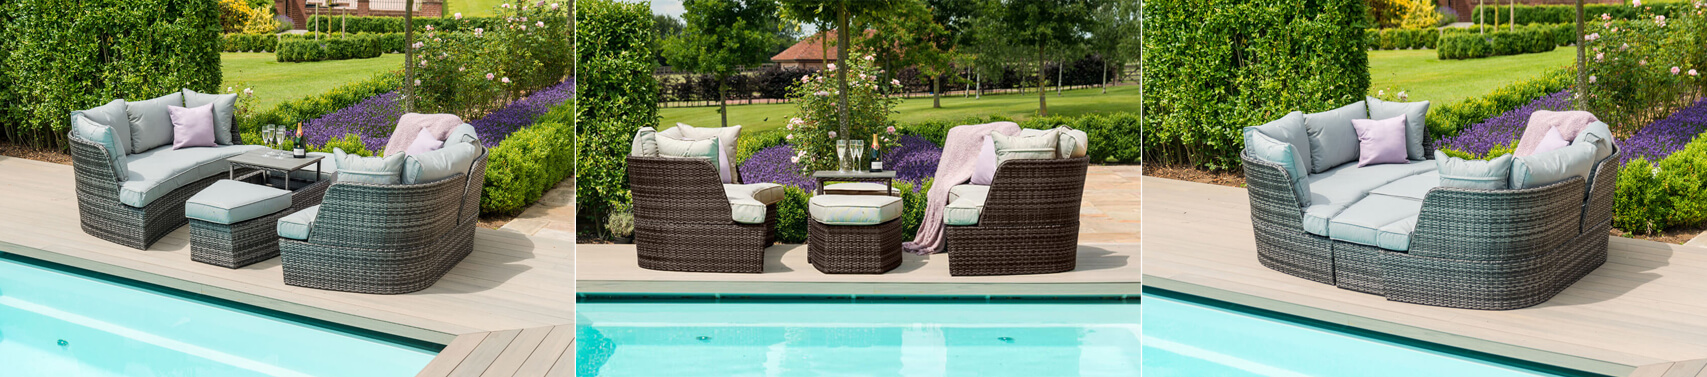 mbimages/m/a/maze_rattan_cheltenham_garden_sofa_and_daybed.jpg